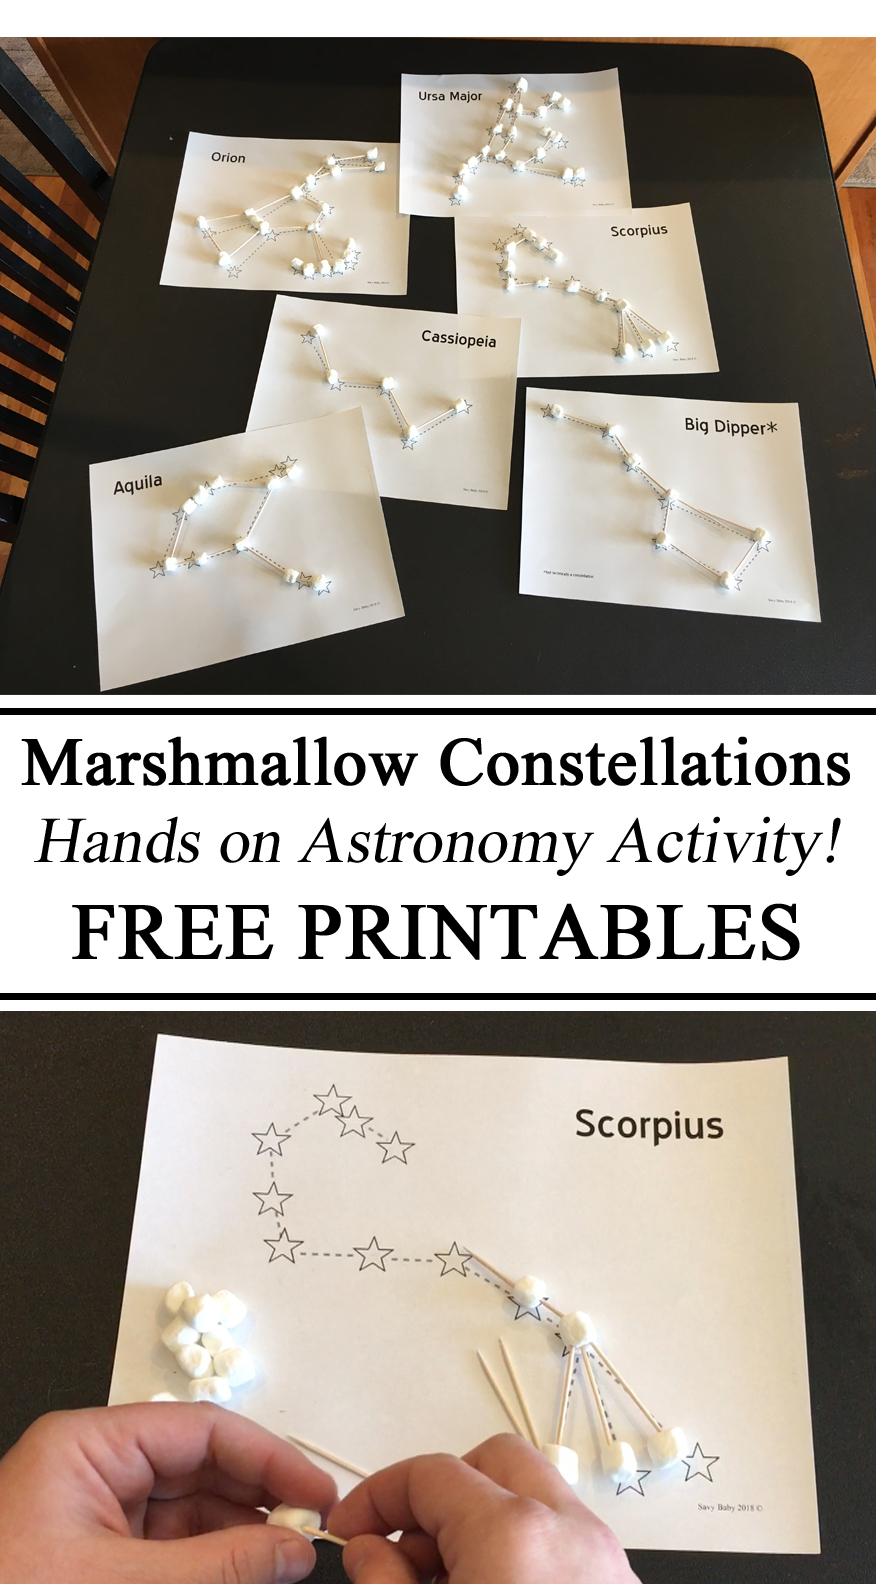 Free Printables, Printables, Free Download, Marshmallow Activities, Astronomy, Constellations, Hands on Activity, Preschool, Kindergarten, Elementary School, Learn about the Stars, Solar System Unit, Space Study, Homeschool, Homeschooling, Montessori, Waldorf, Educational